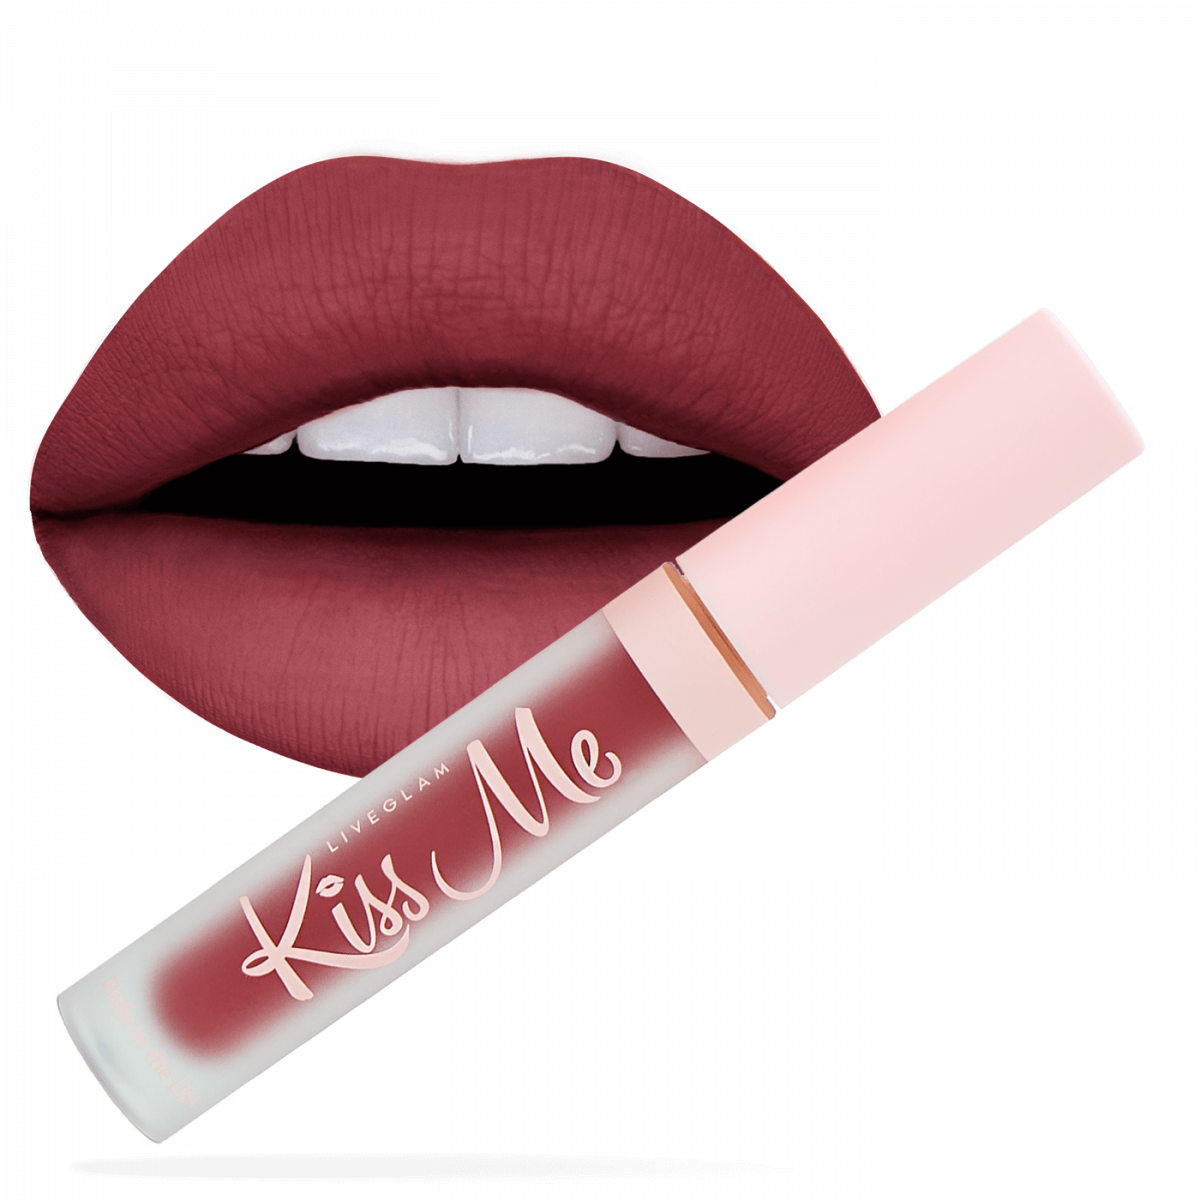 KissMe birthday bundle apple cider lipstick